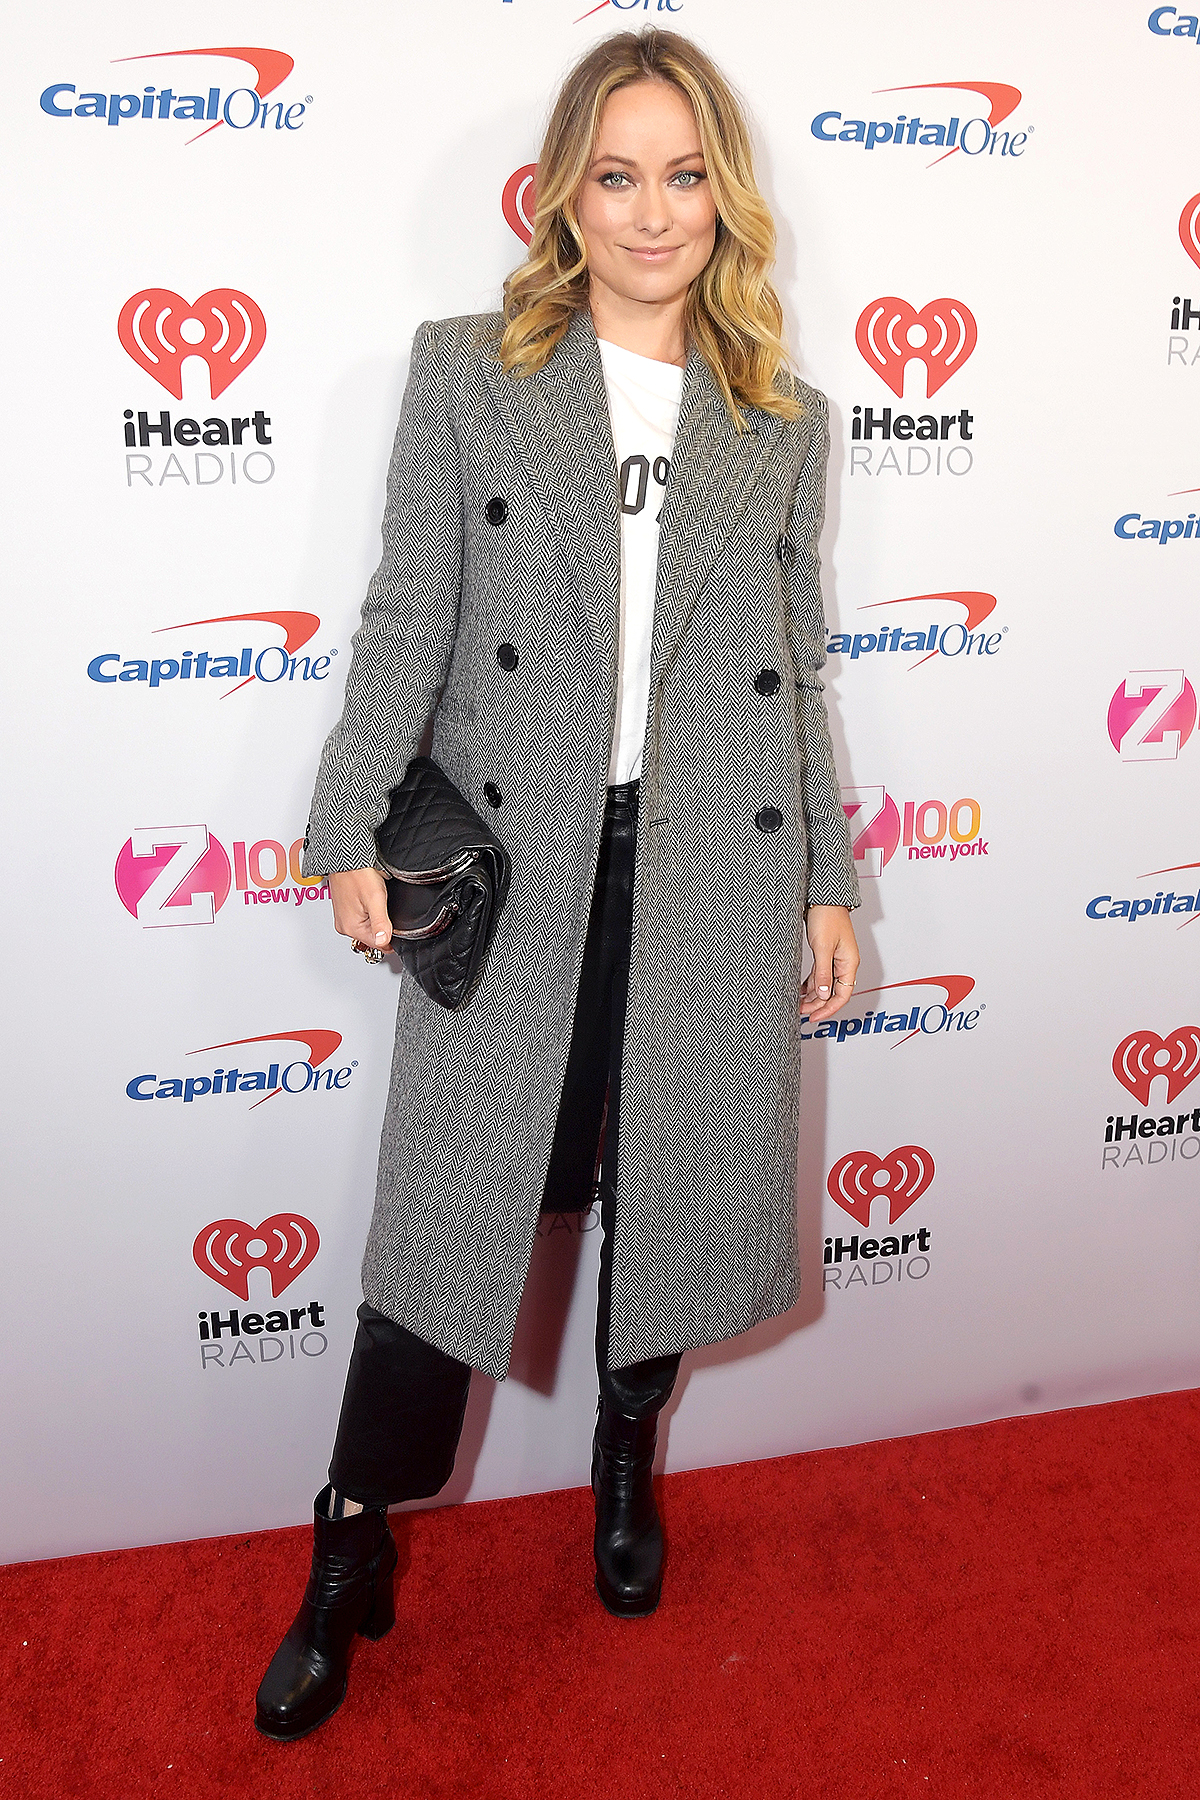 Olivia Wilde arrives at iHeartRadio's Z100 Jingle Ball 2019 at Madison Square Garden on December 13, 2019 in New York City.